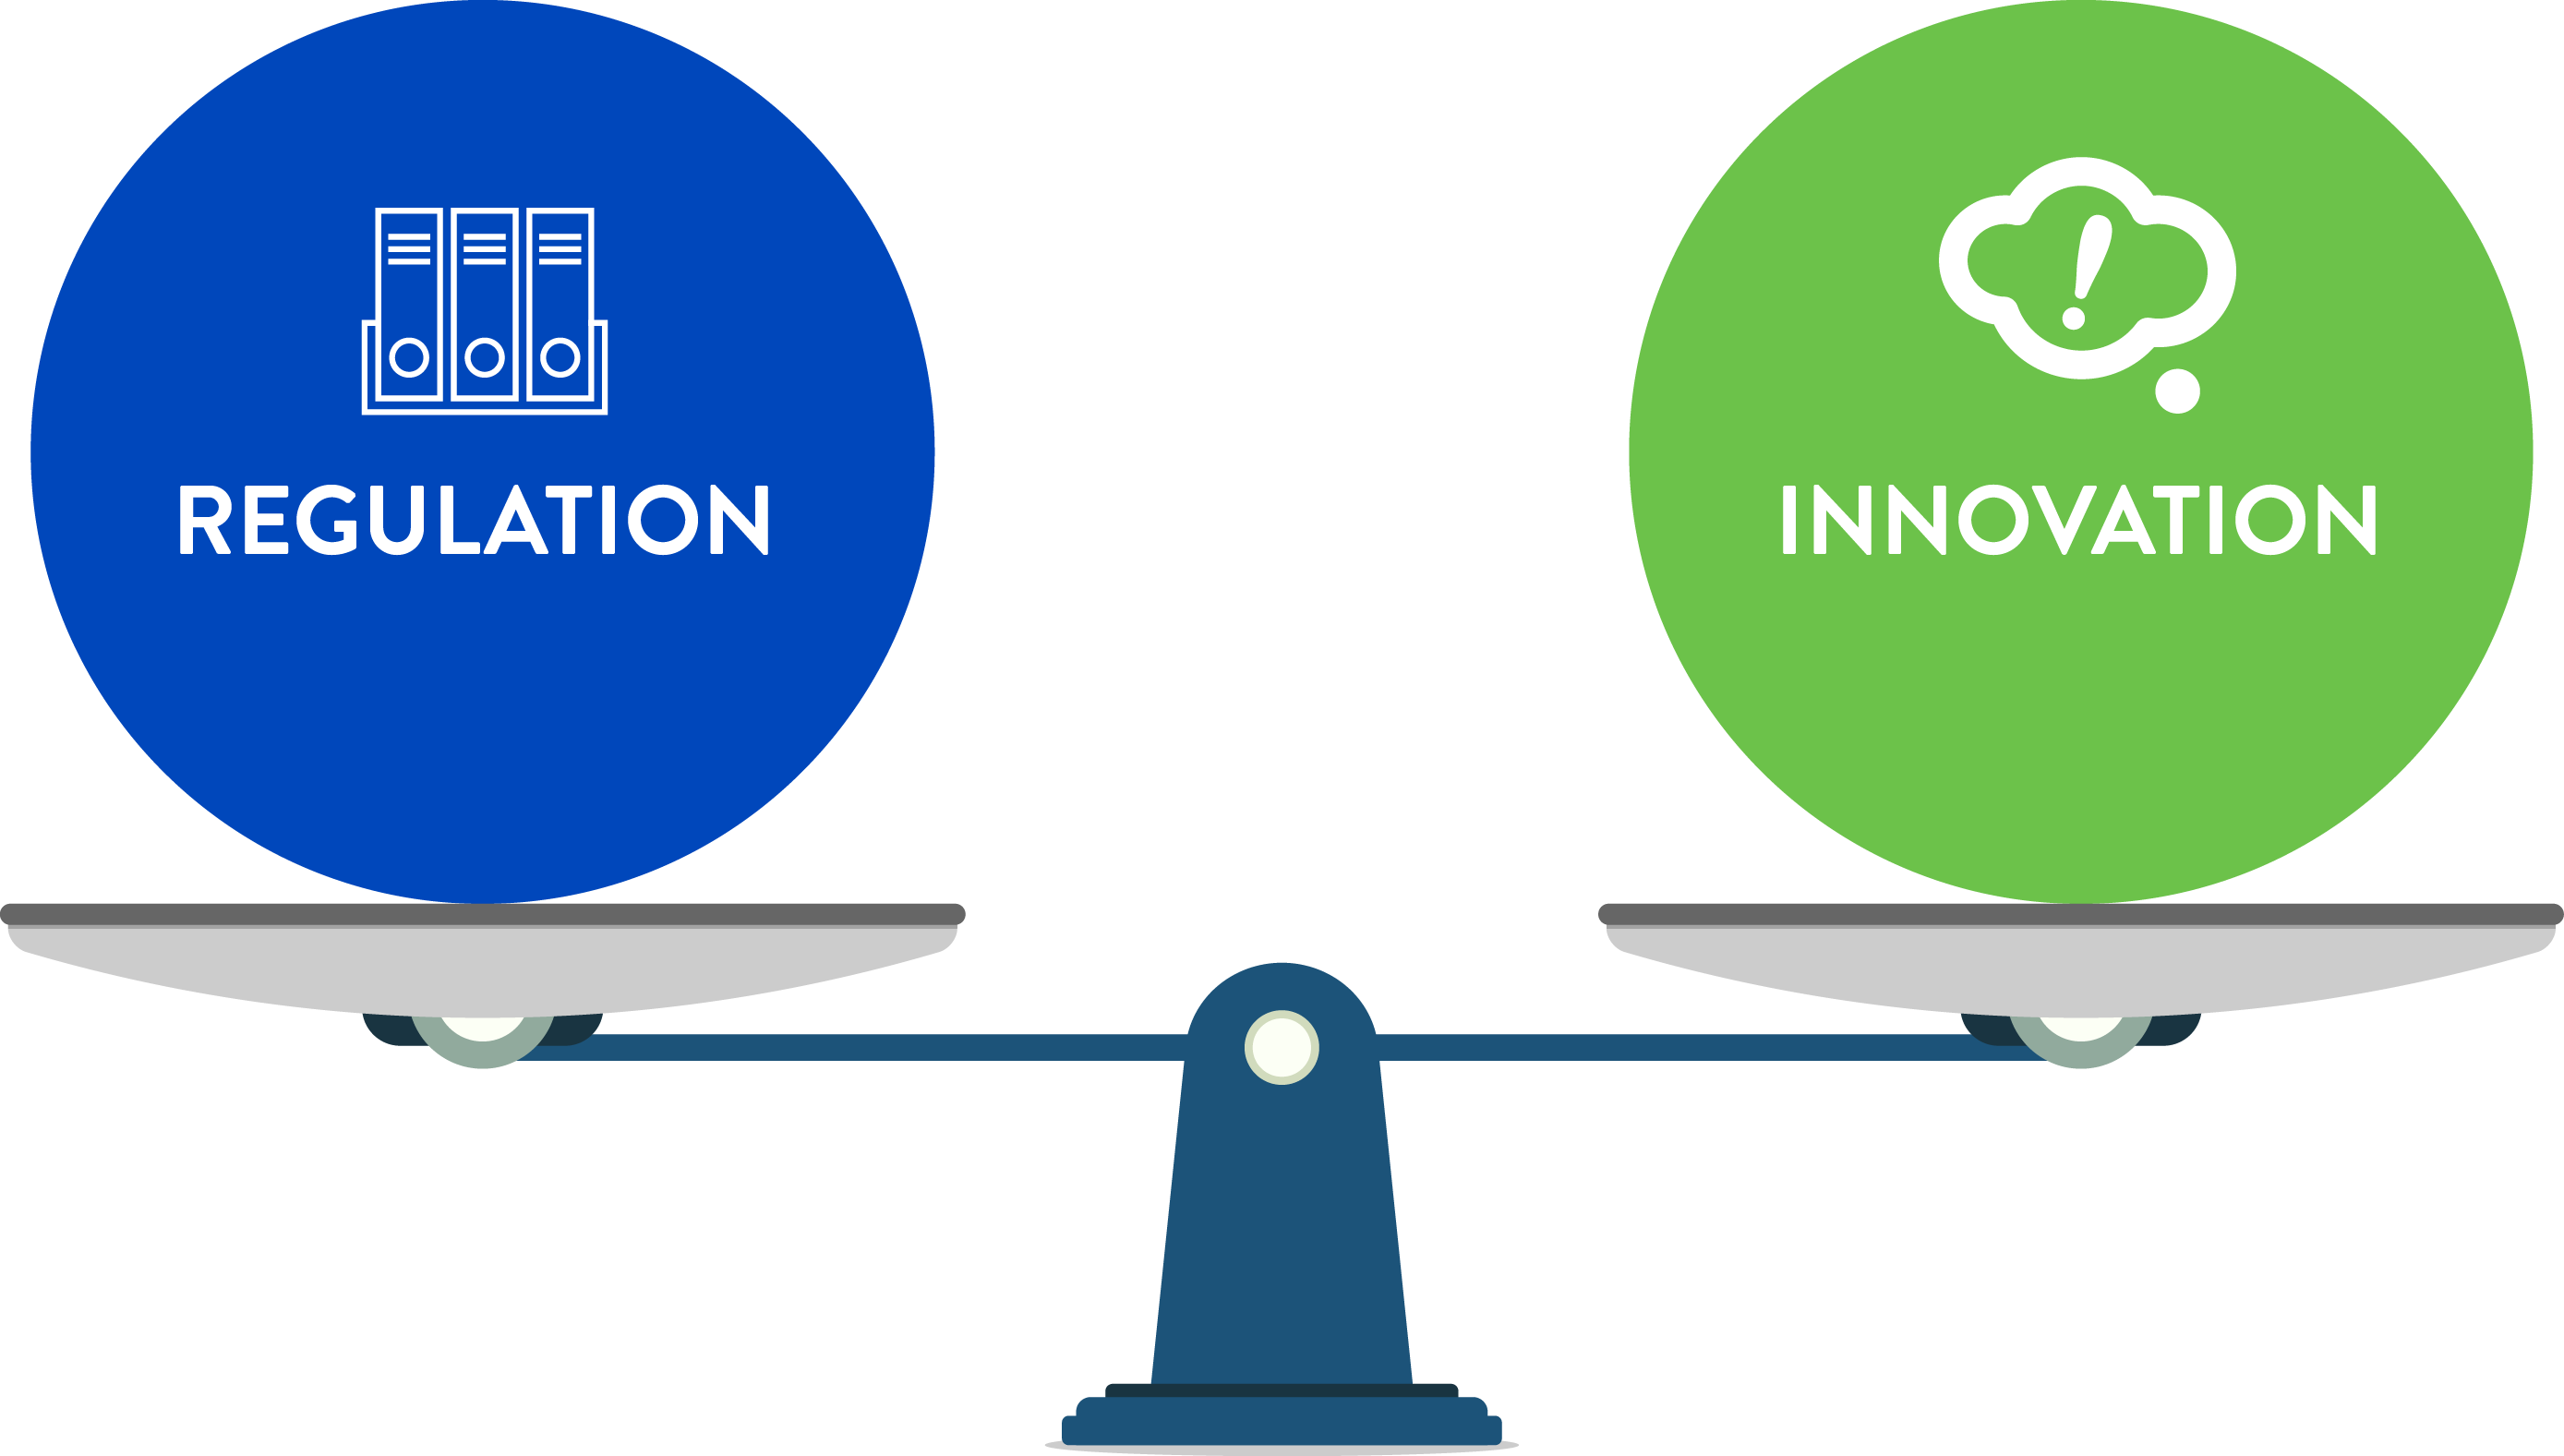 Scale diagram of regulation and innovation